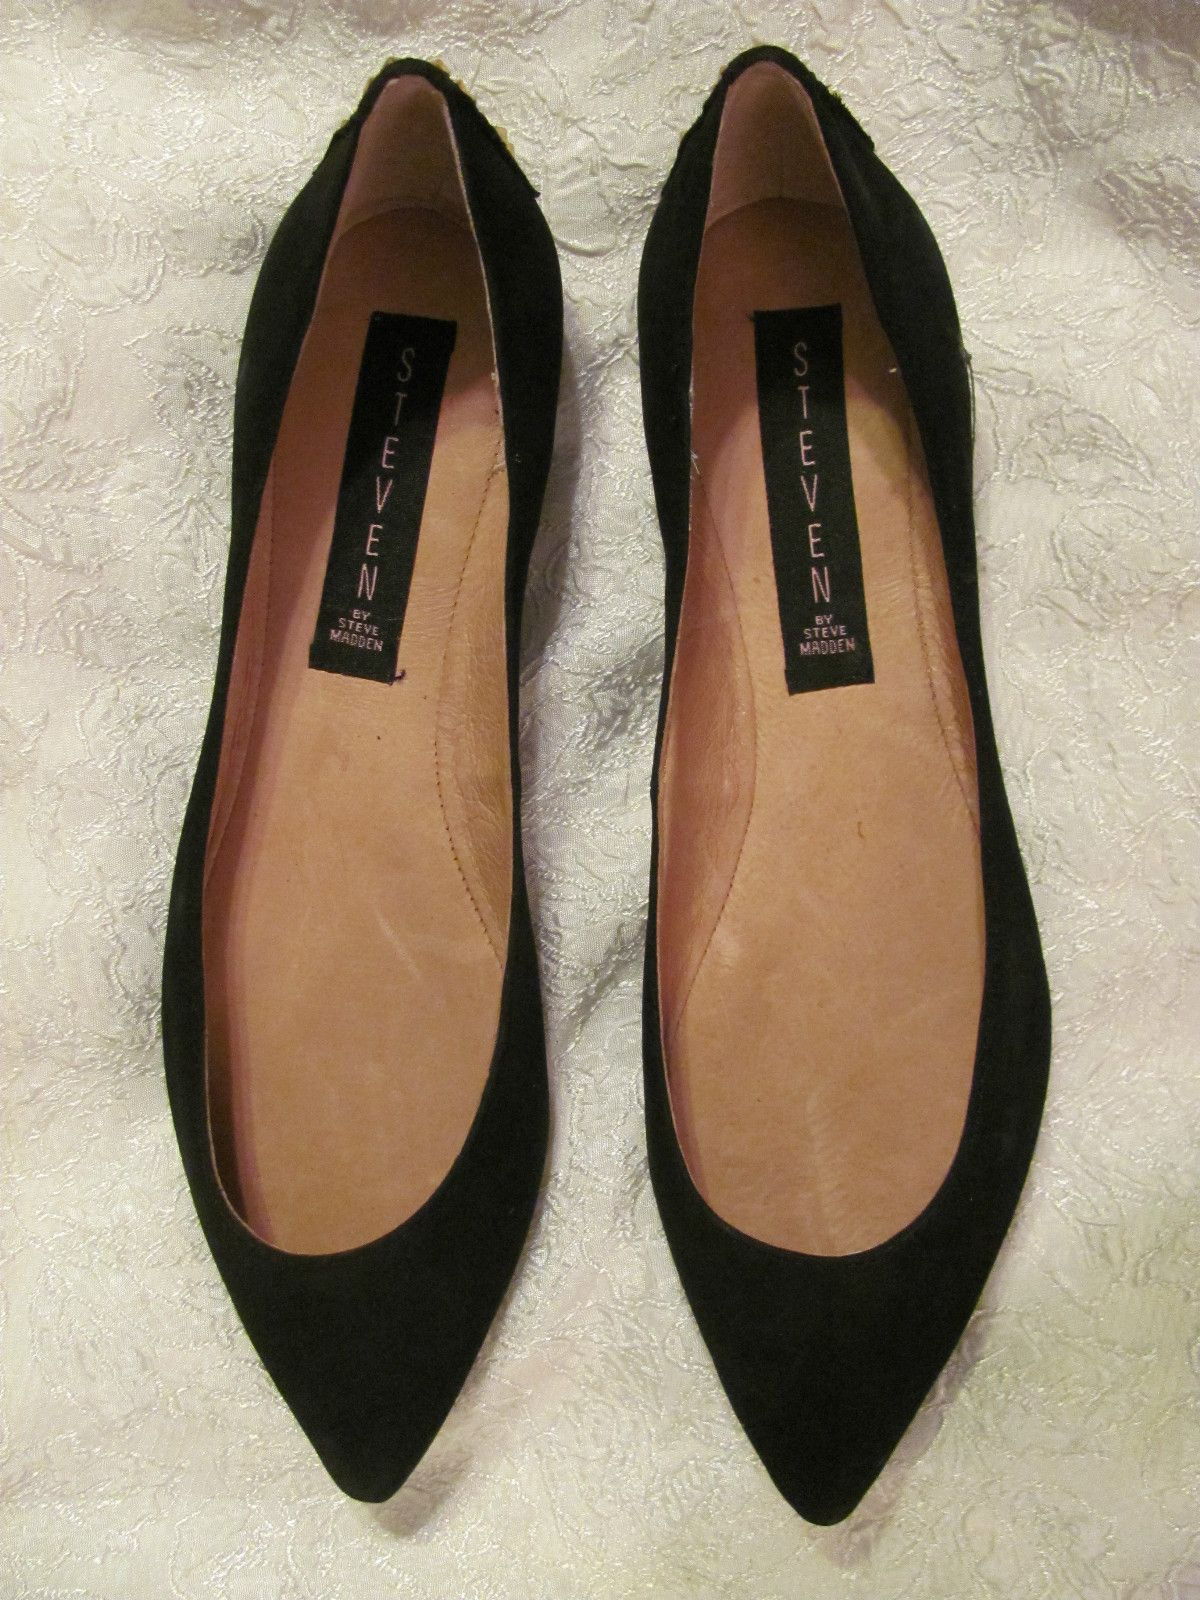 39f6e9fd9f4 Steven by Steve Madden Eternal Black Nubuck Leather Sexy Flats Size ...